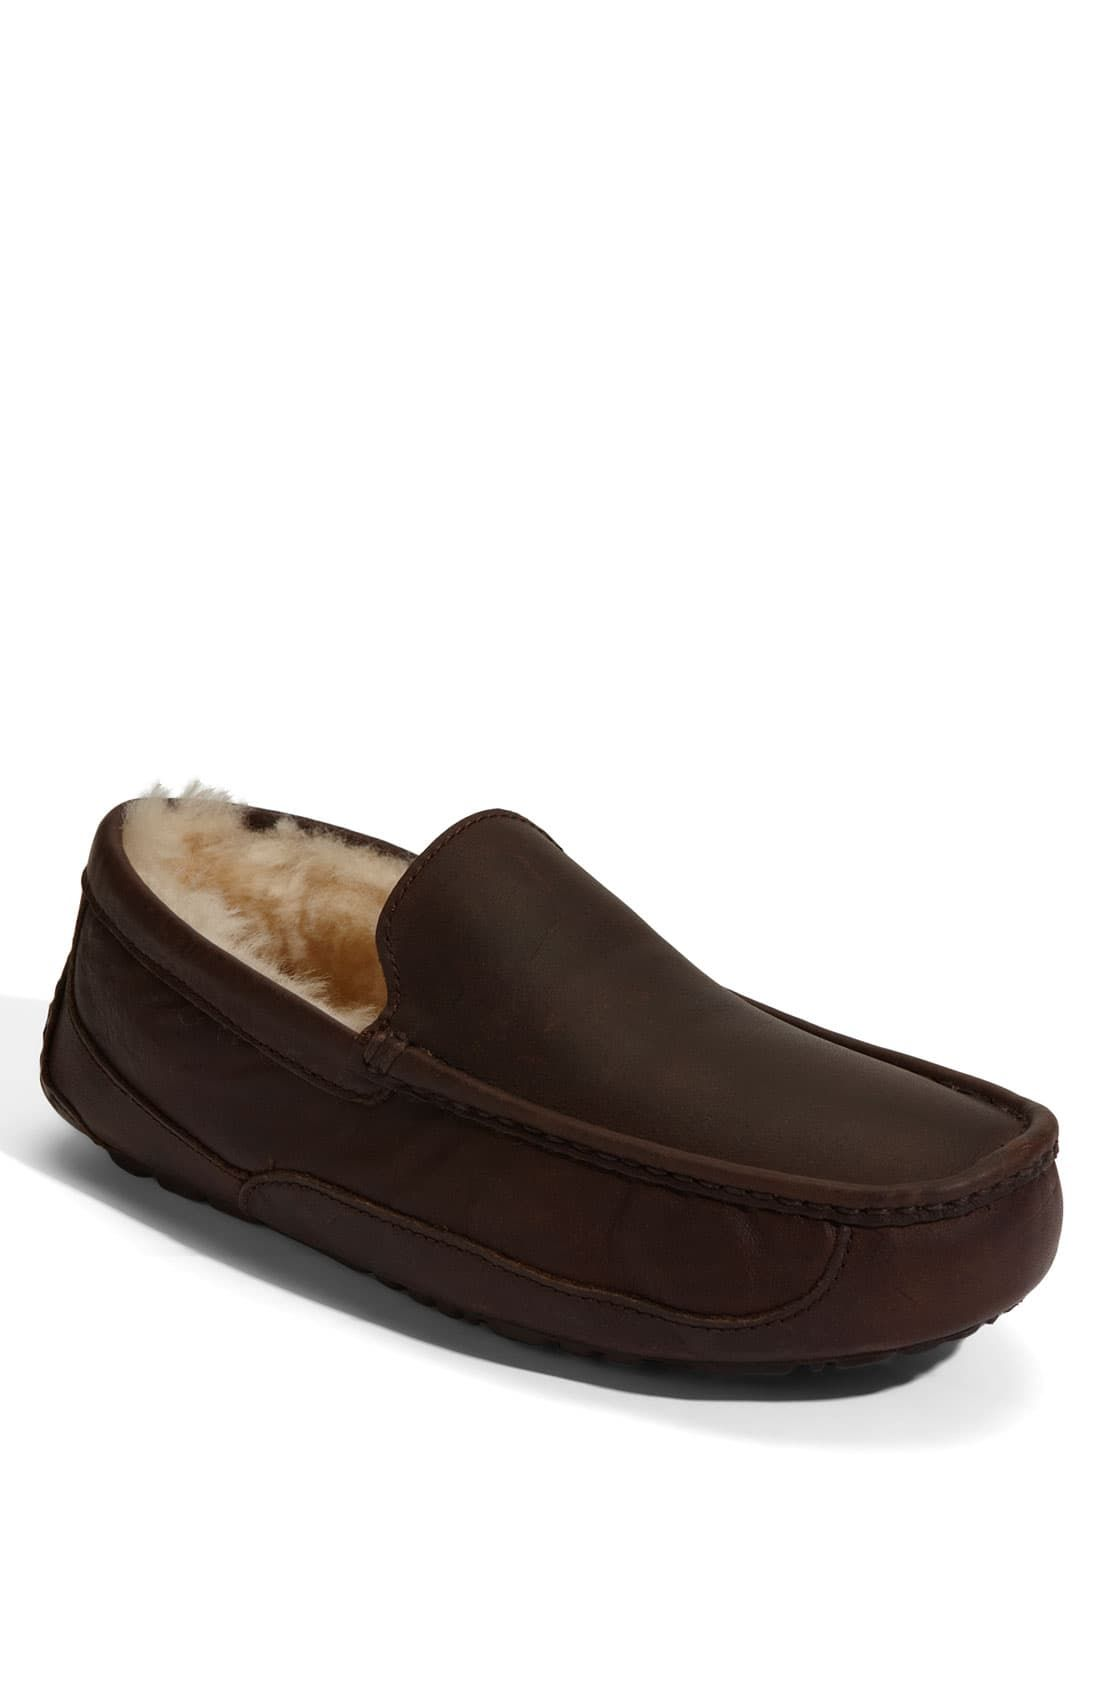 1cea8e180b2 Men's Ugg Ascot Leather Slipper, Size 16 M - Brown in 2019 ...